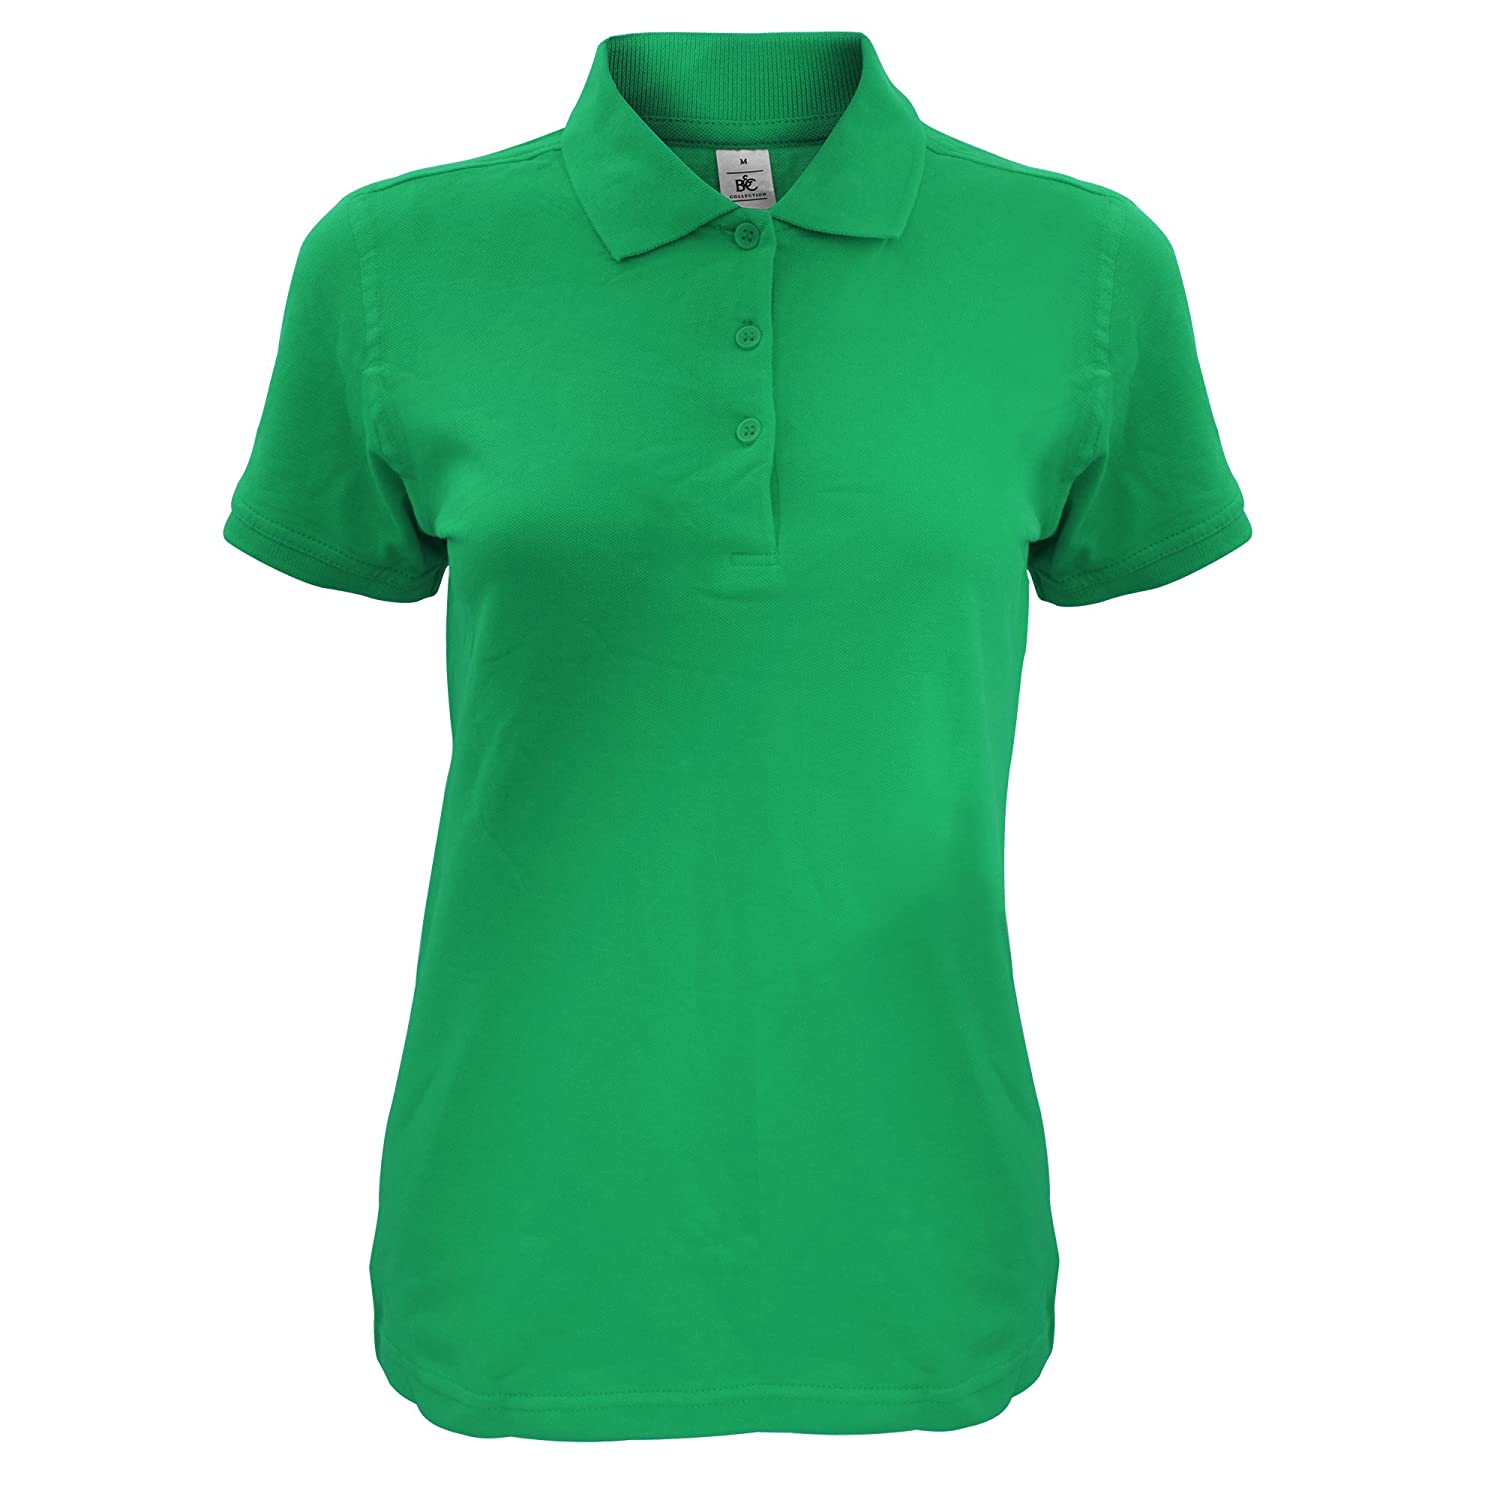 B&C Womens/Ladies Safran Timeless Polo Shirt B and C